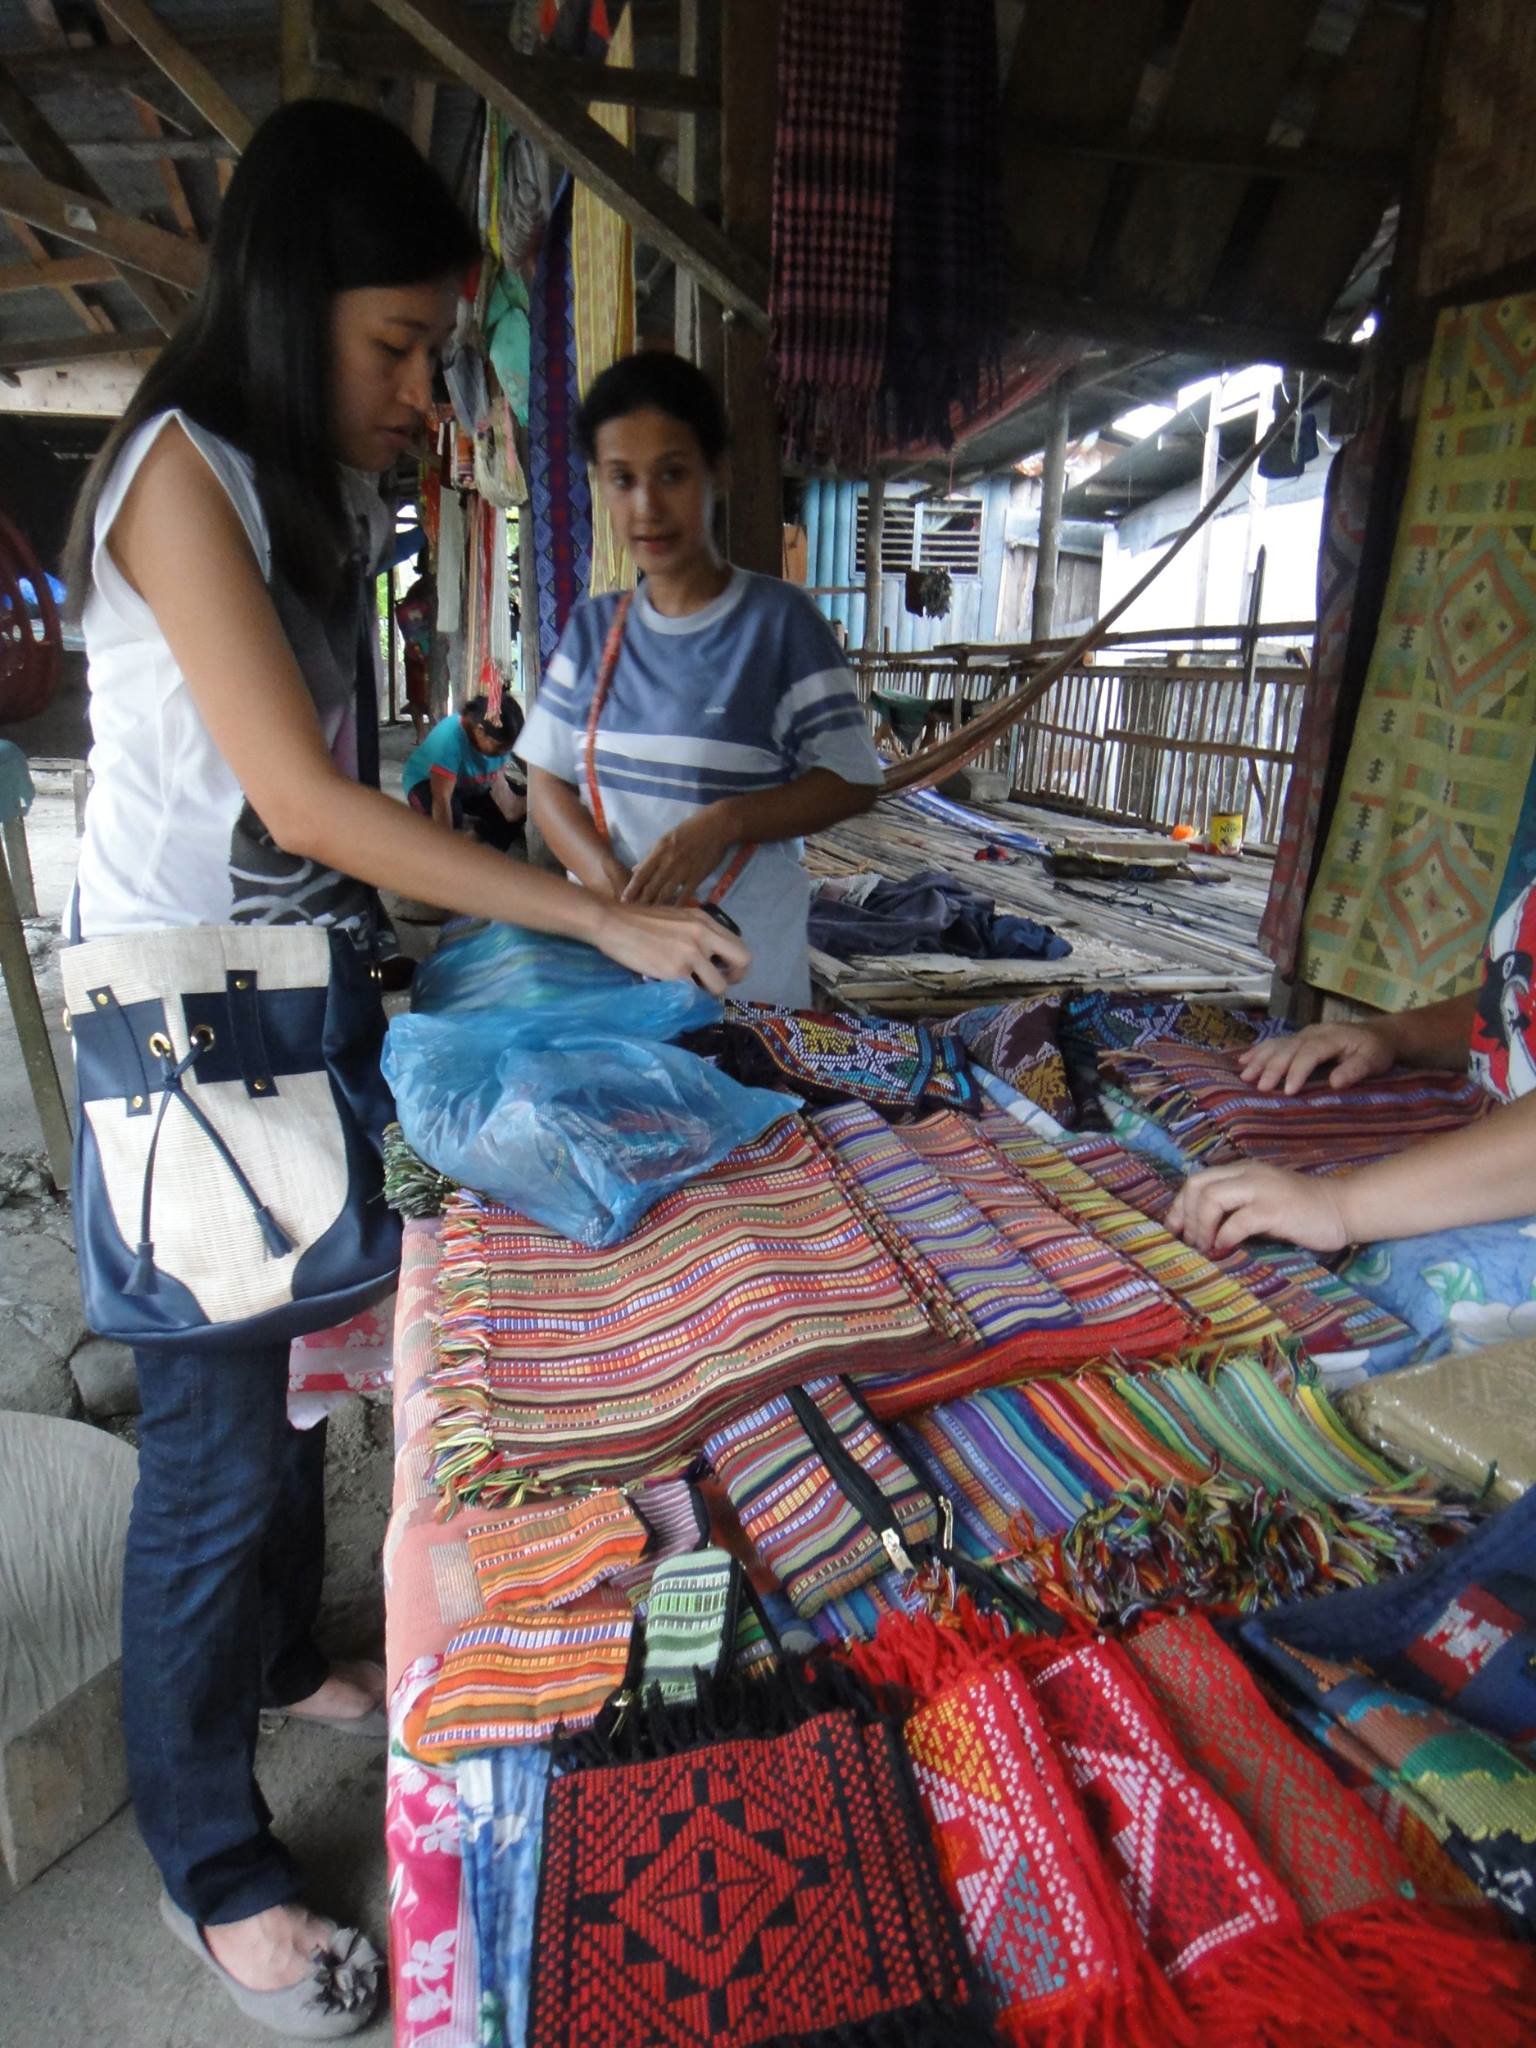 FOCUS. Martha Rodriguez says what differentiates Mindanaoan textiles is the focus on patterns, texture, and color.